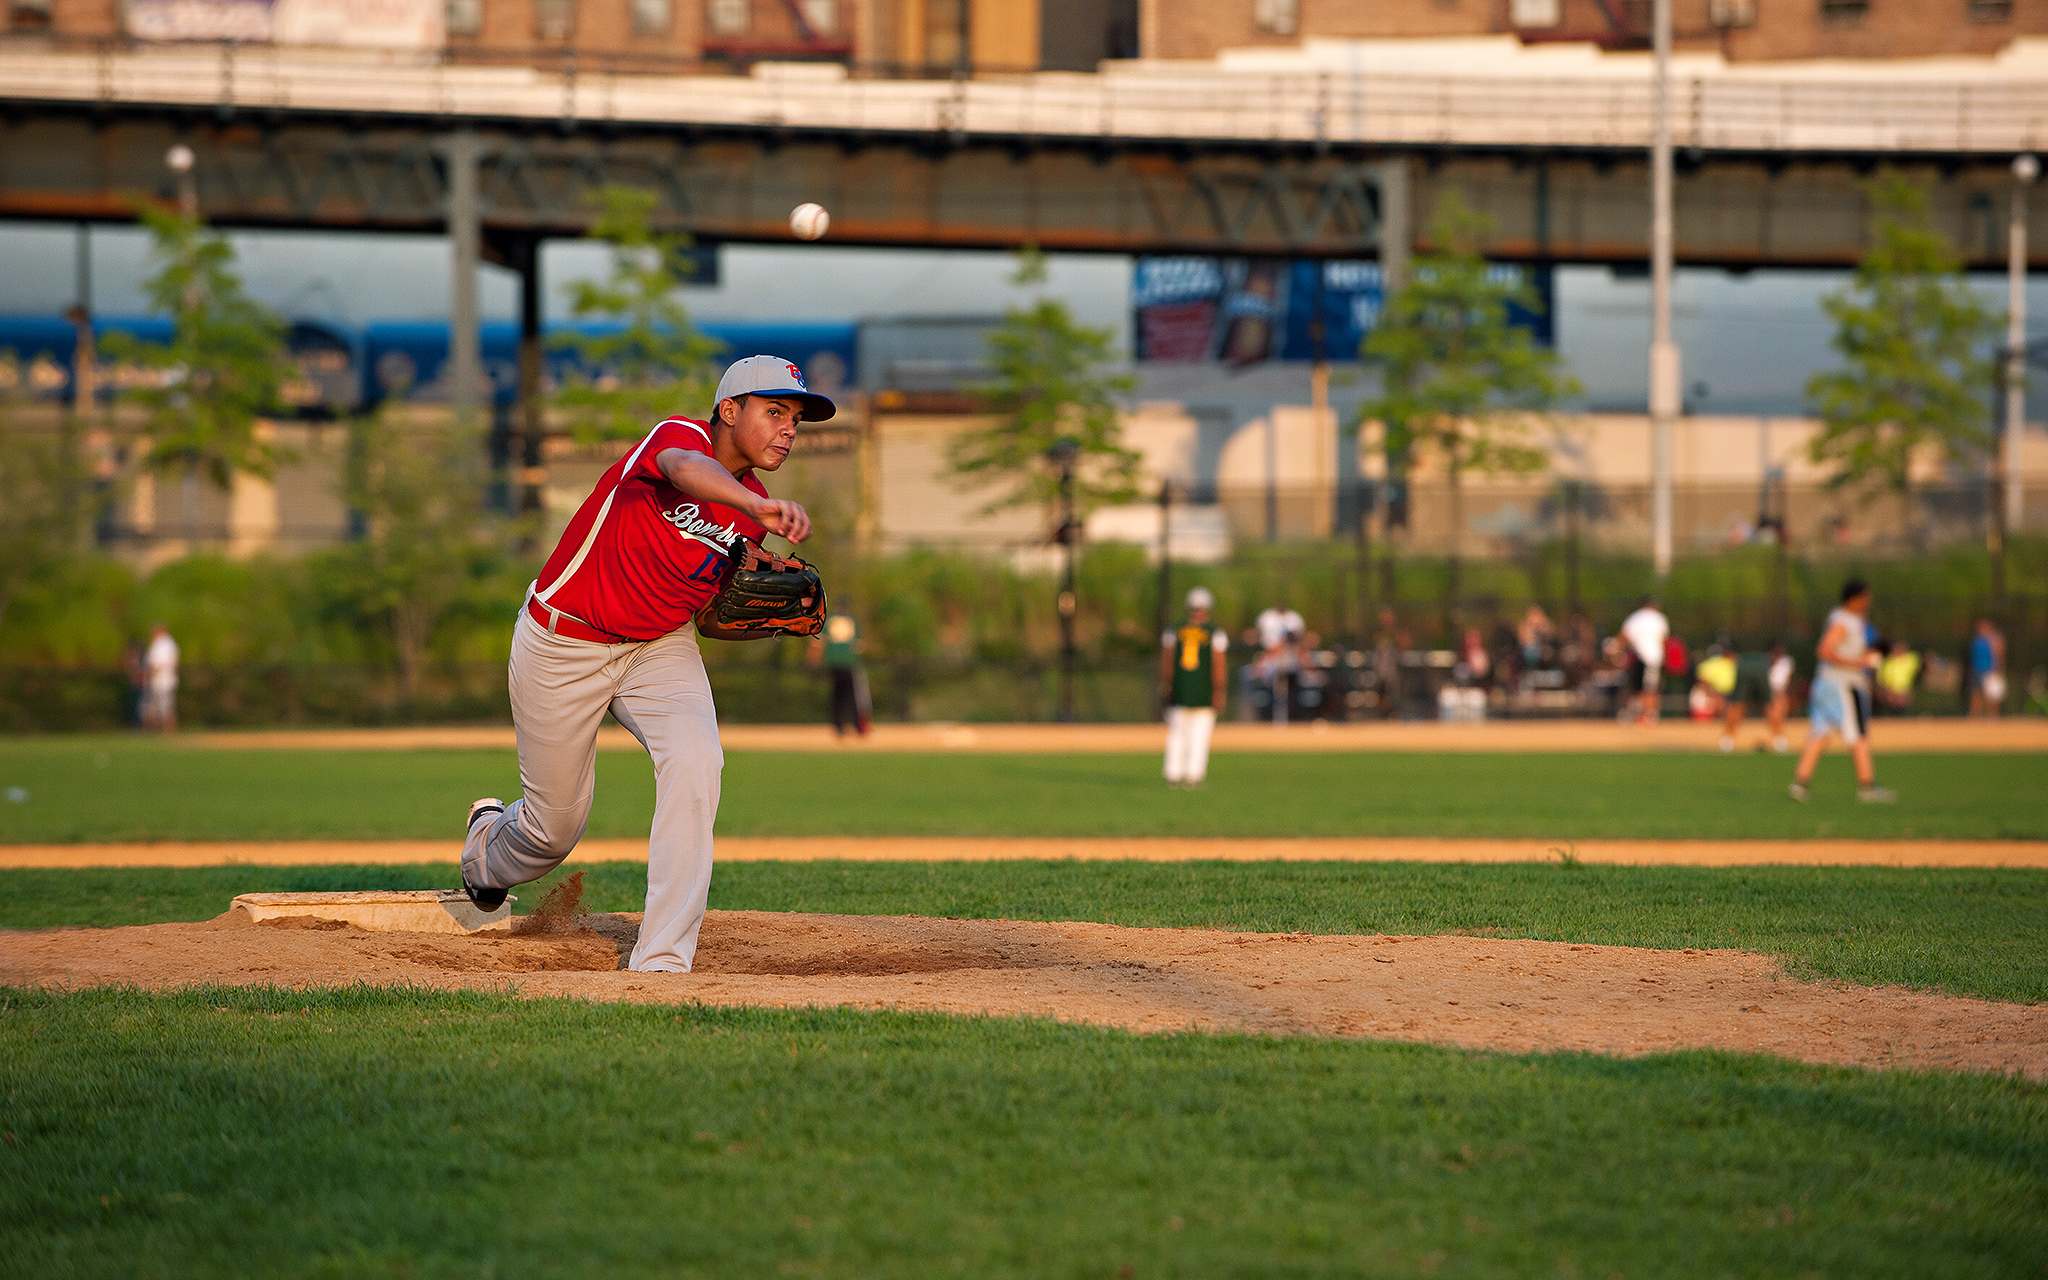 Pitching at Heritage Field